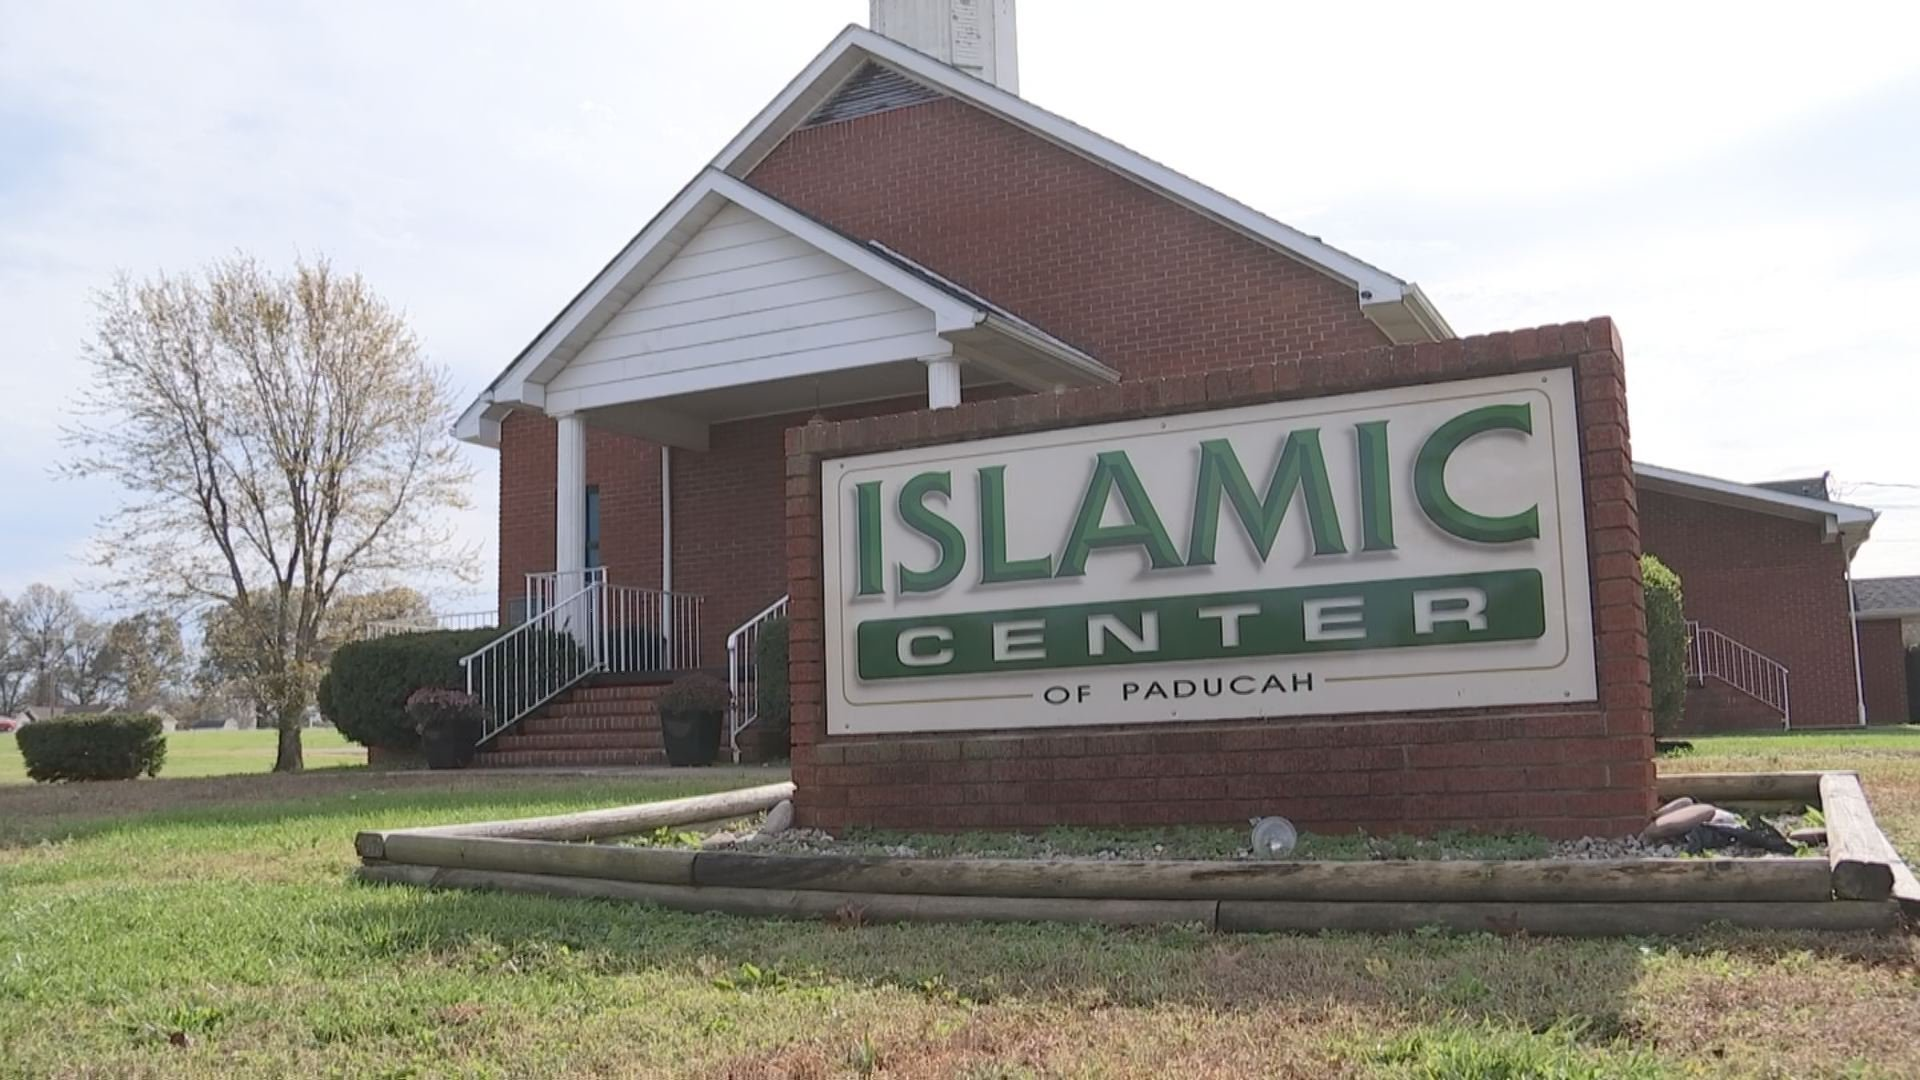 paducah muslim Find 119 listings related to muslim center in paducah on ypcom see reviews, photos, directions, phone numbers and more for muslim center locations in paducah, ky.